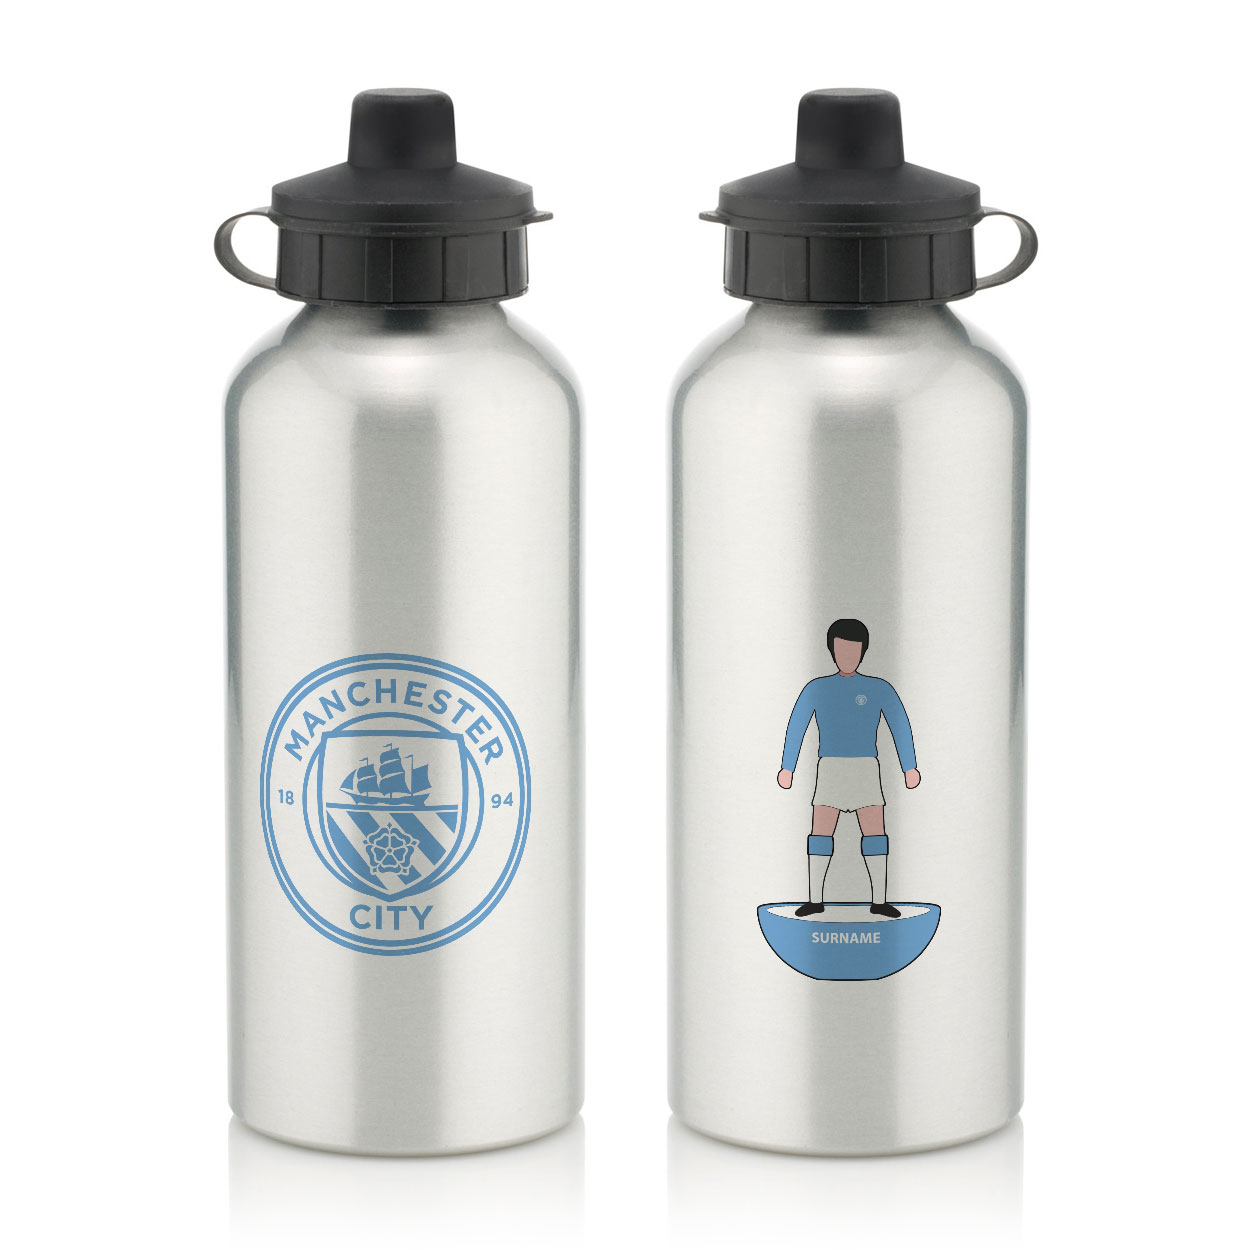 Manchester City FC Player Figure Water Bottle